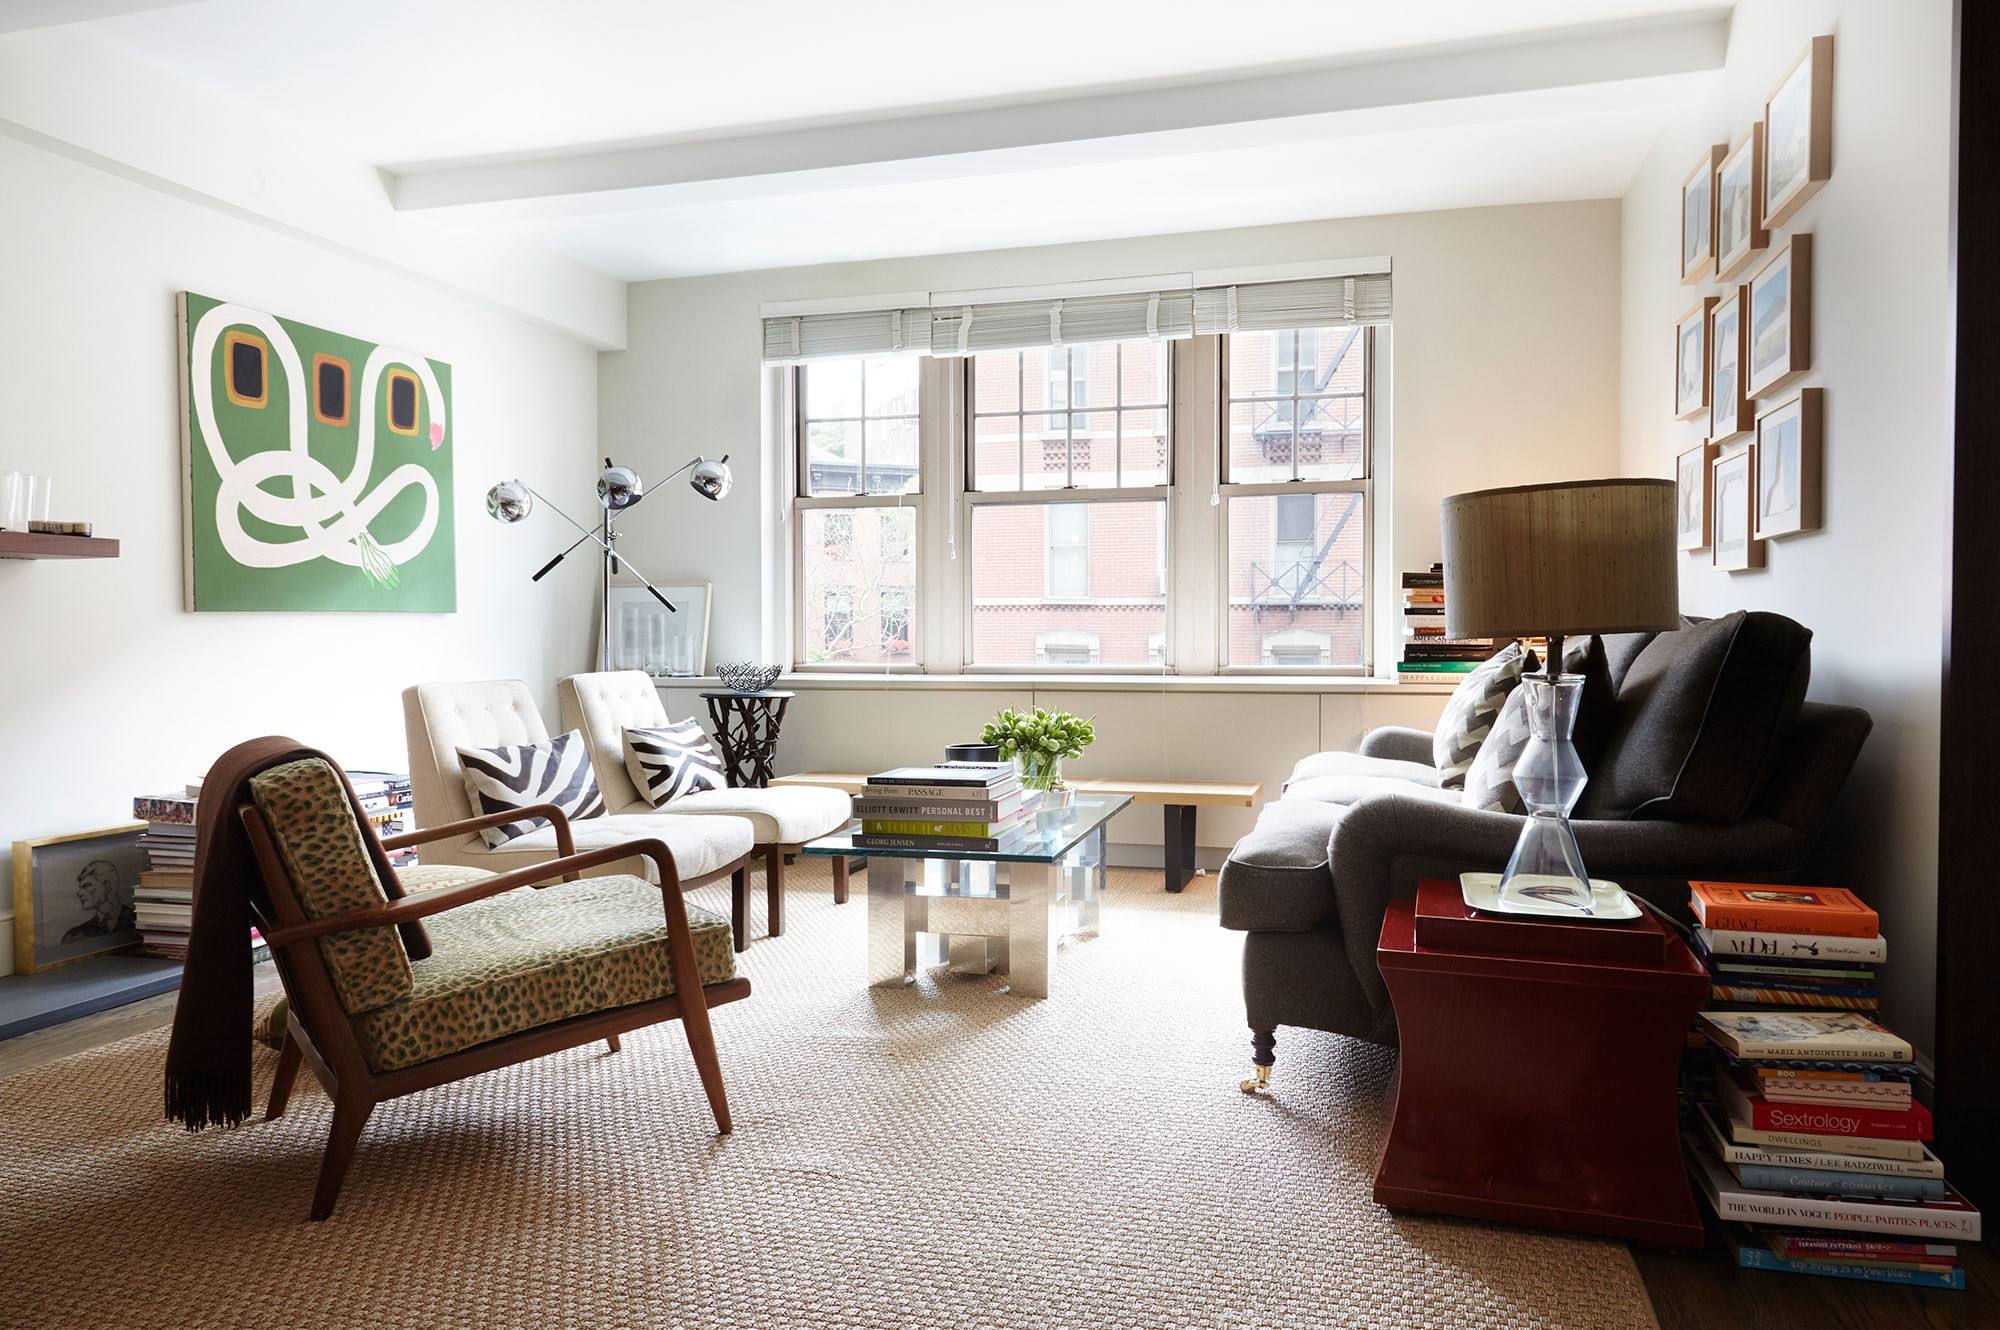 Peter Somu0027s New York City Apartment. Generous Seating In The Living Room  Allows For Stylish Entertaining.